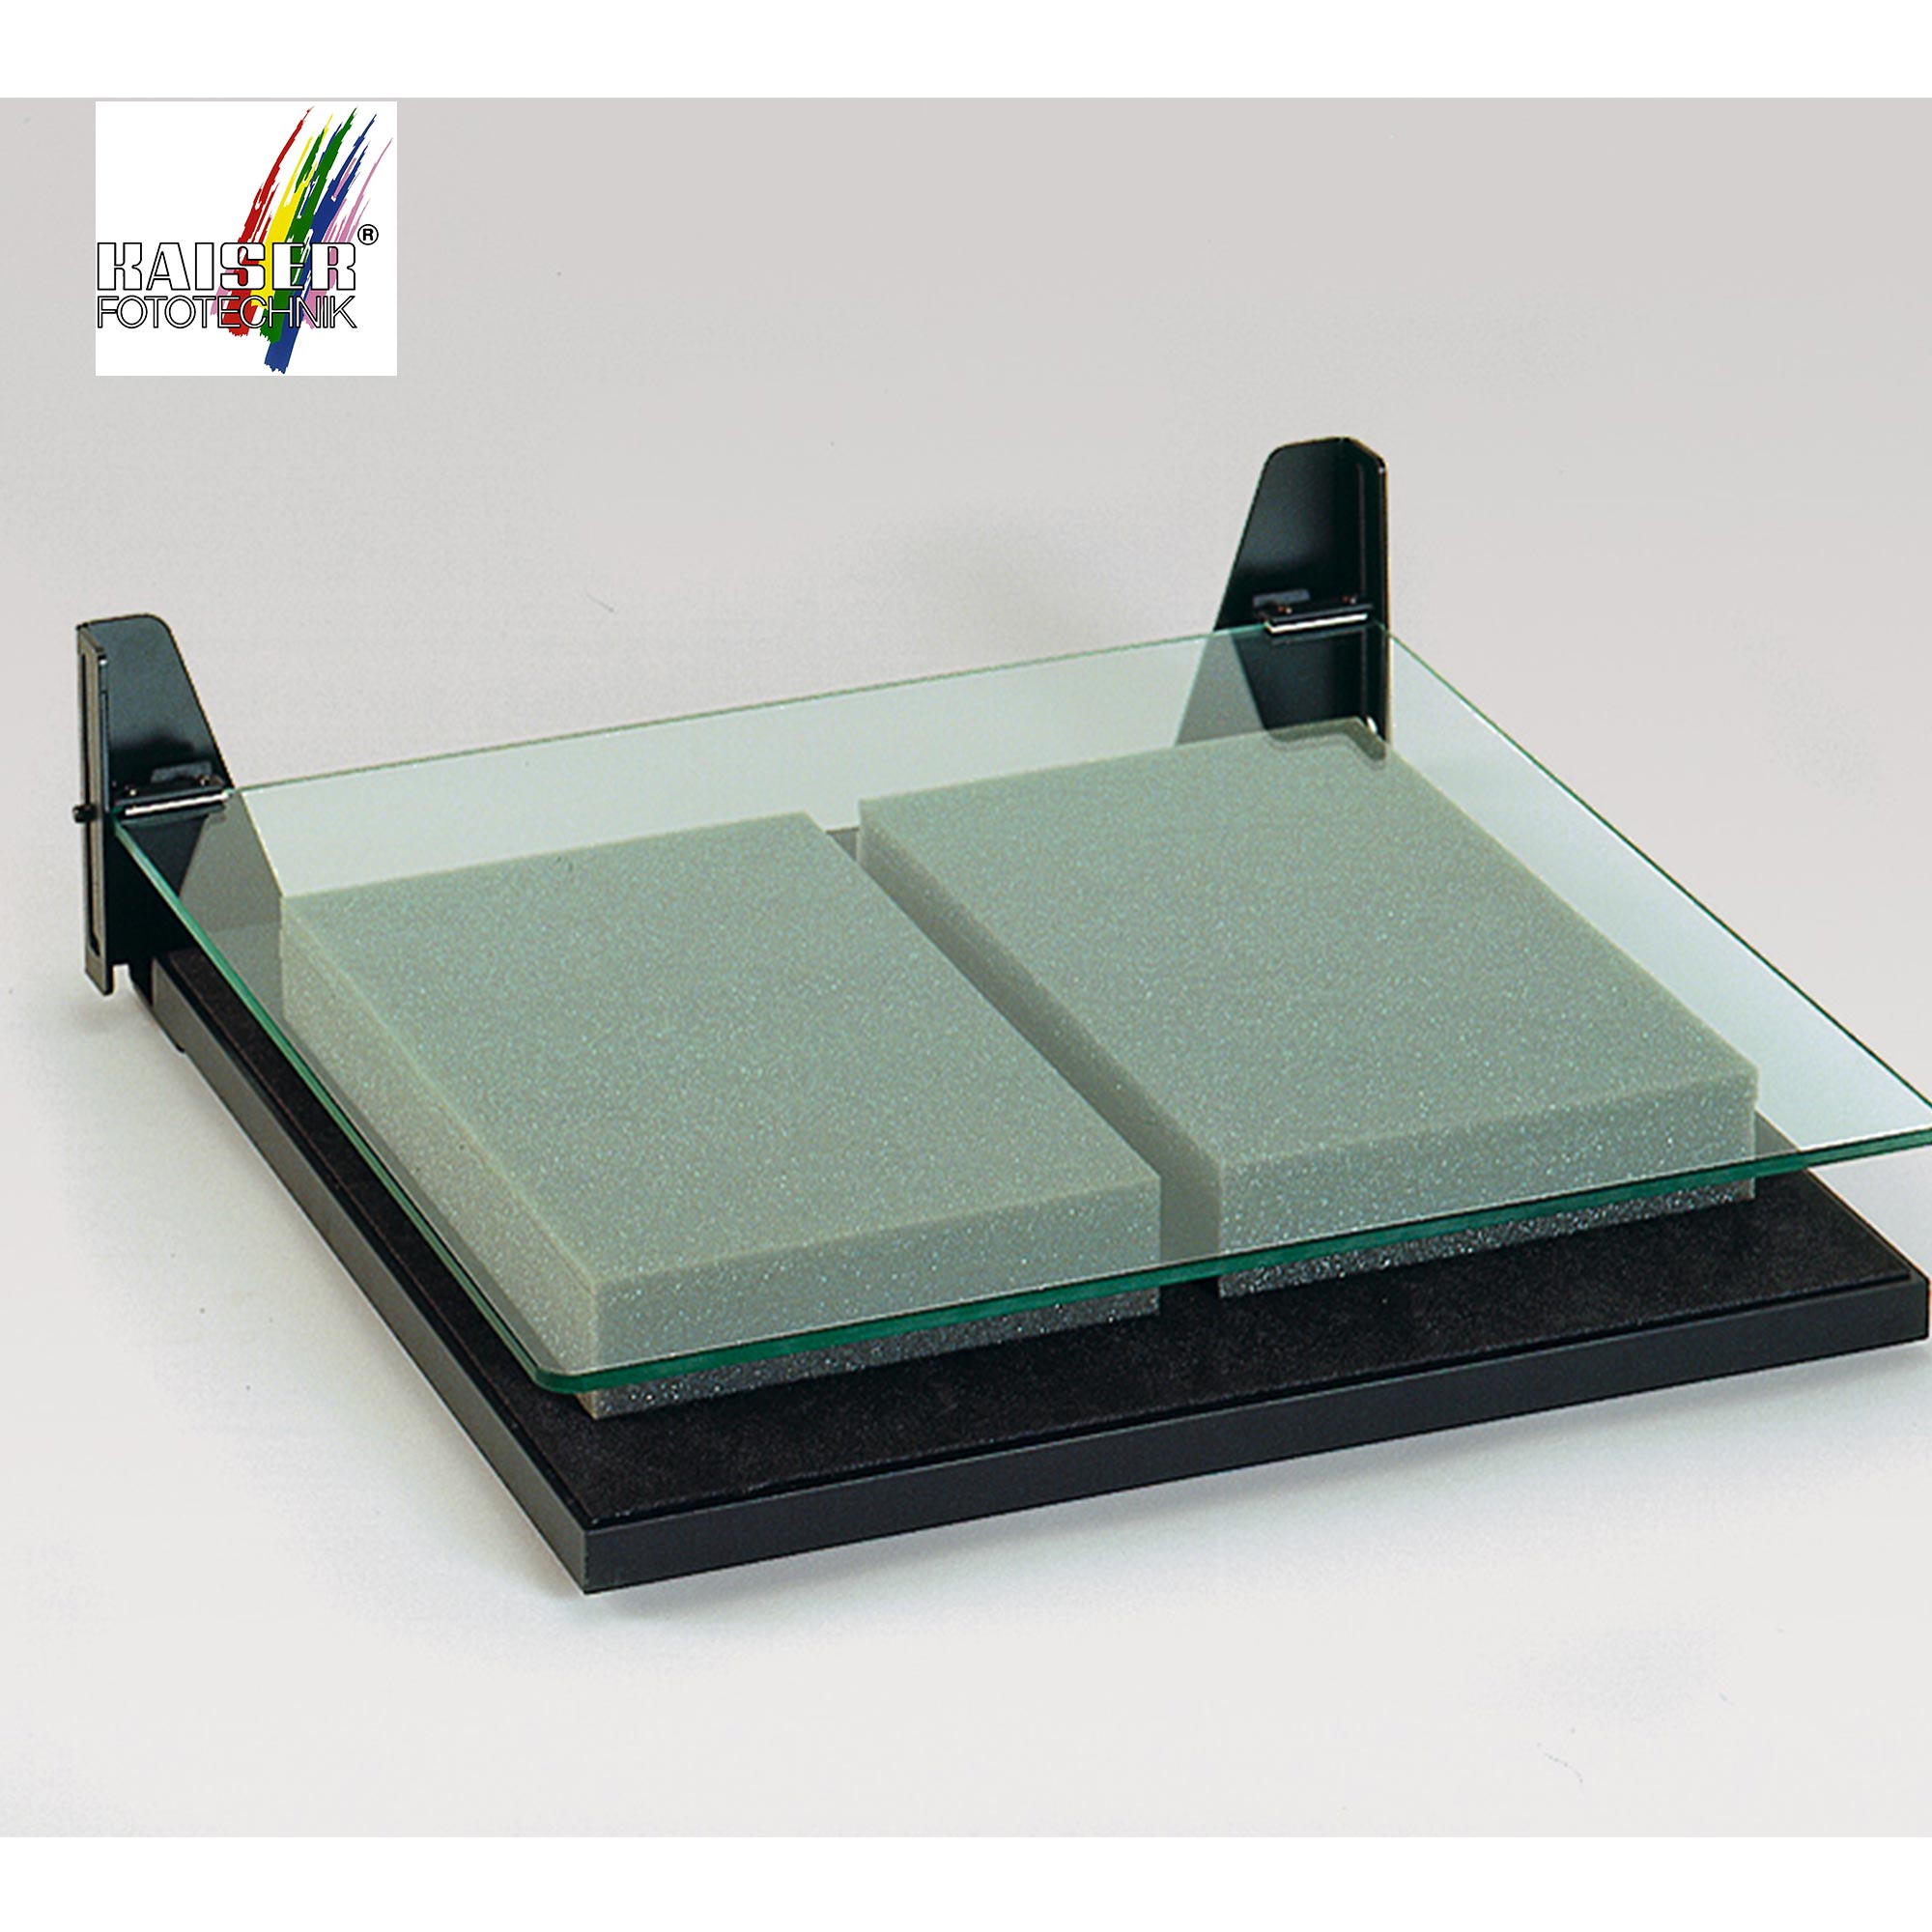 kaiser book holder for copy stand with glass plate